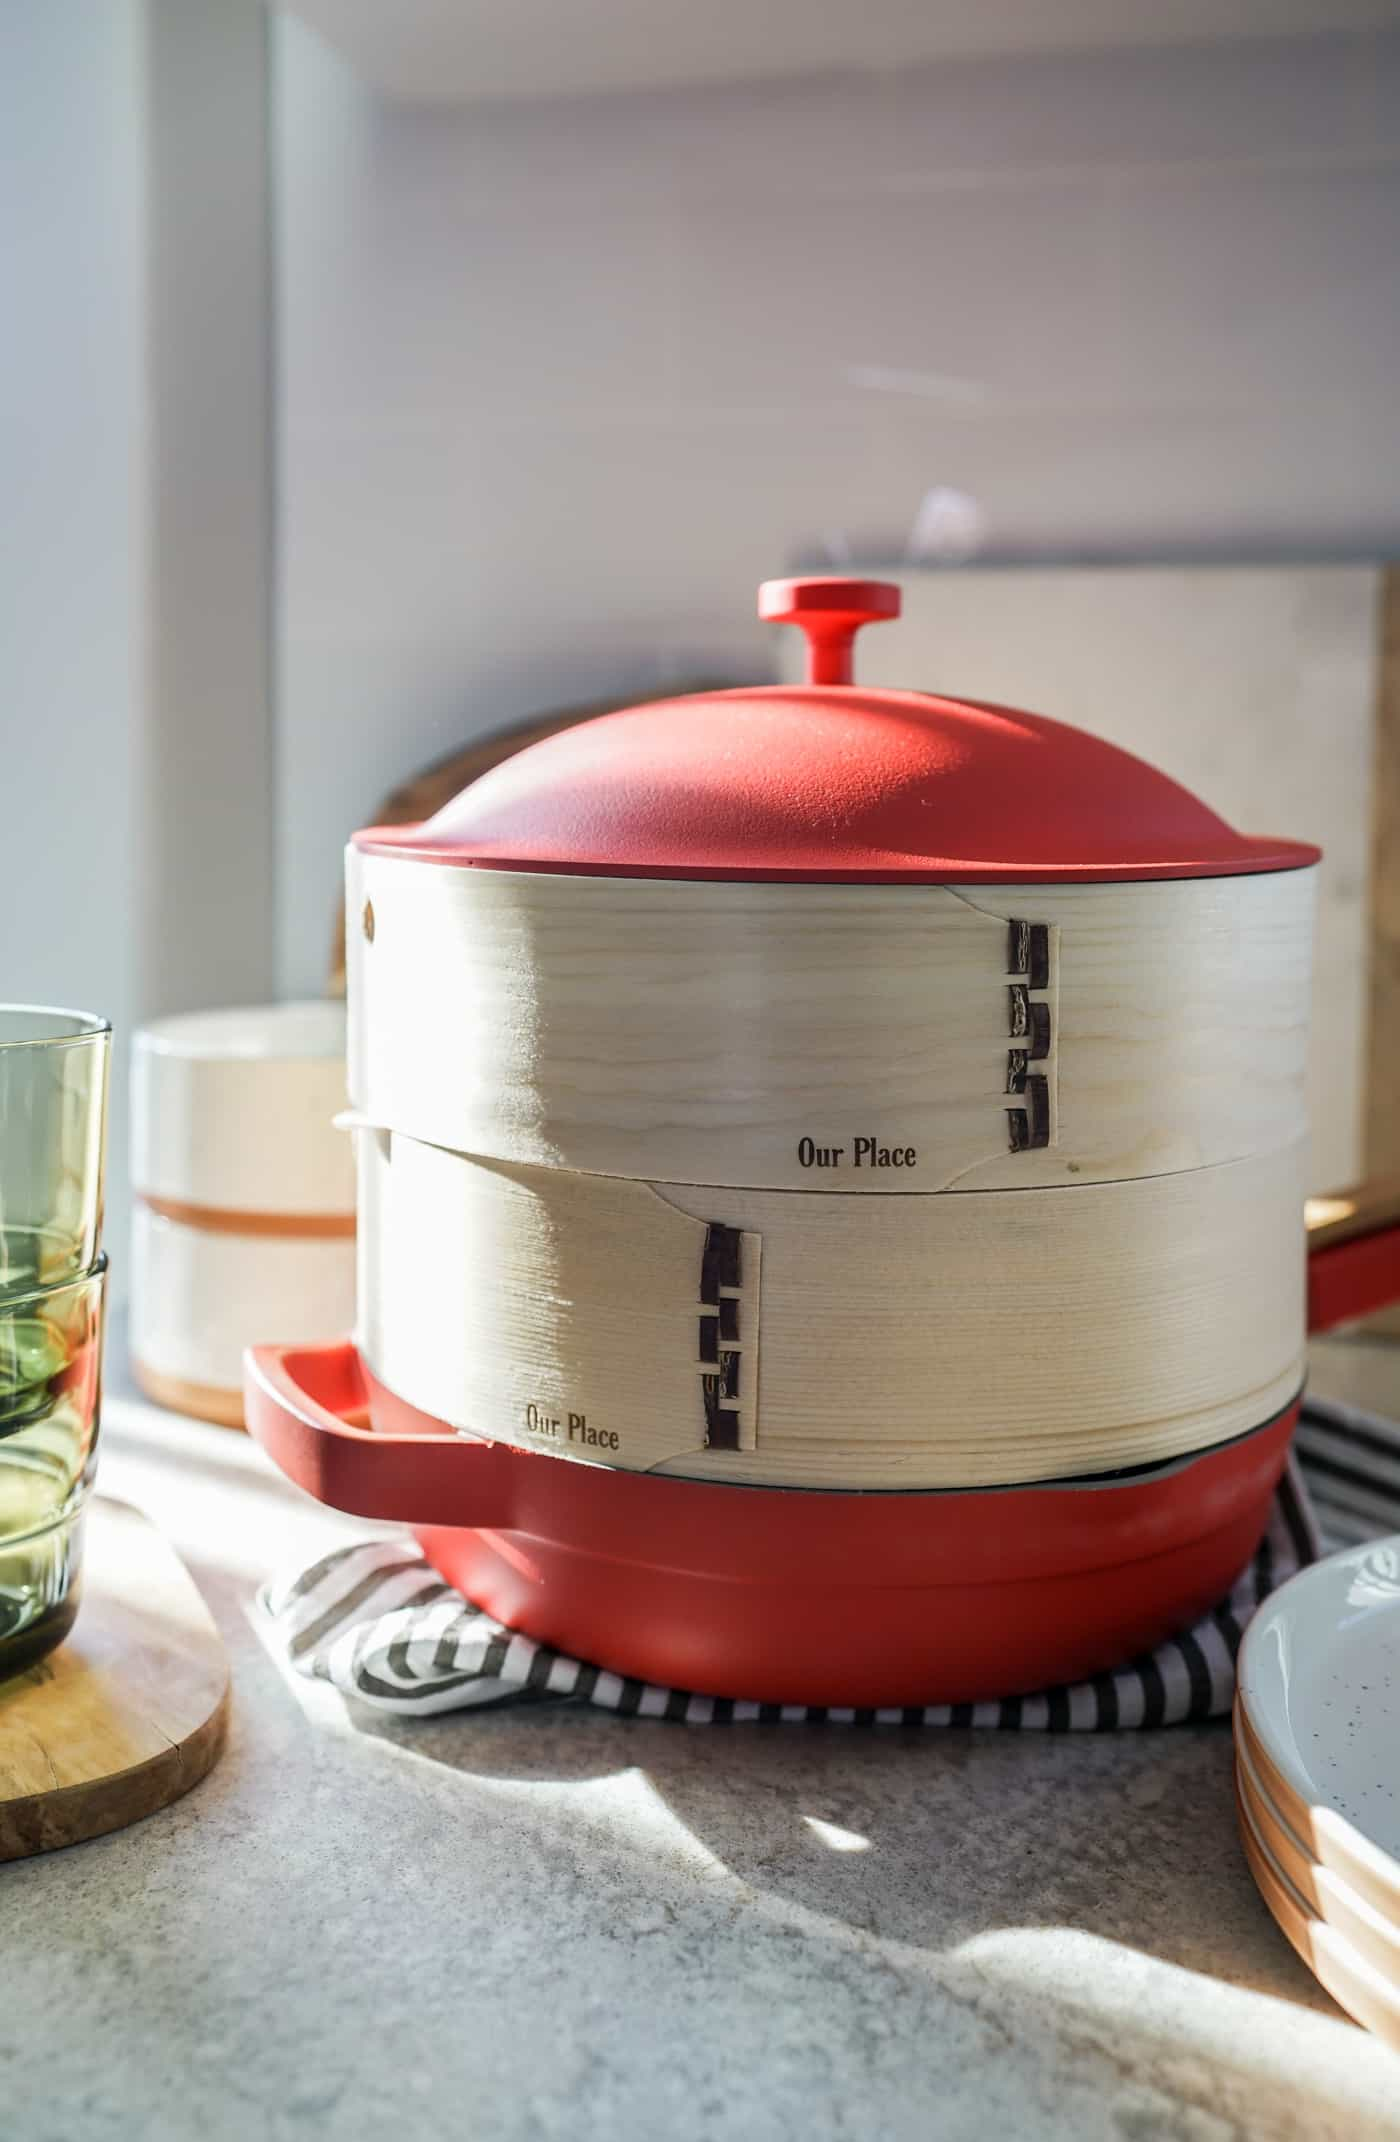 The Our Place Always Pan in color Heat with bamboo steamer inserts